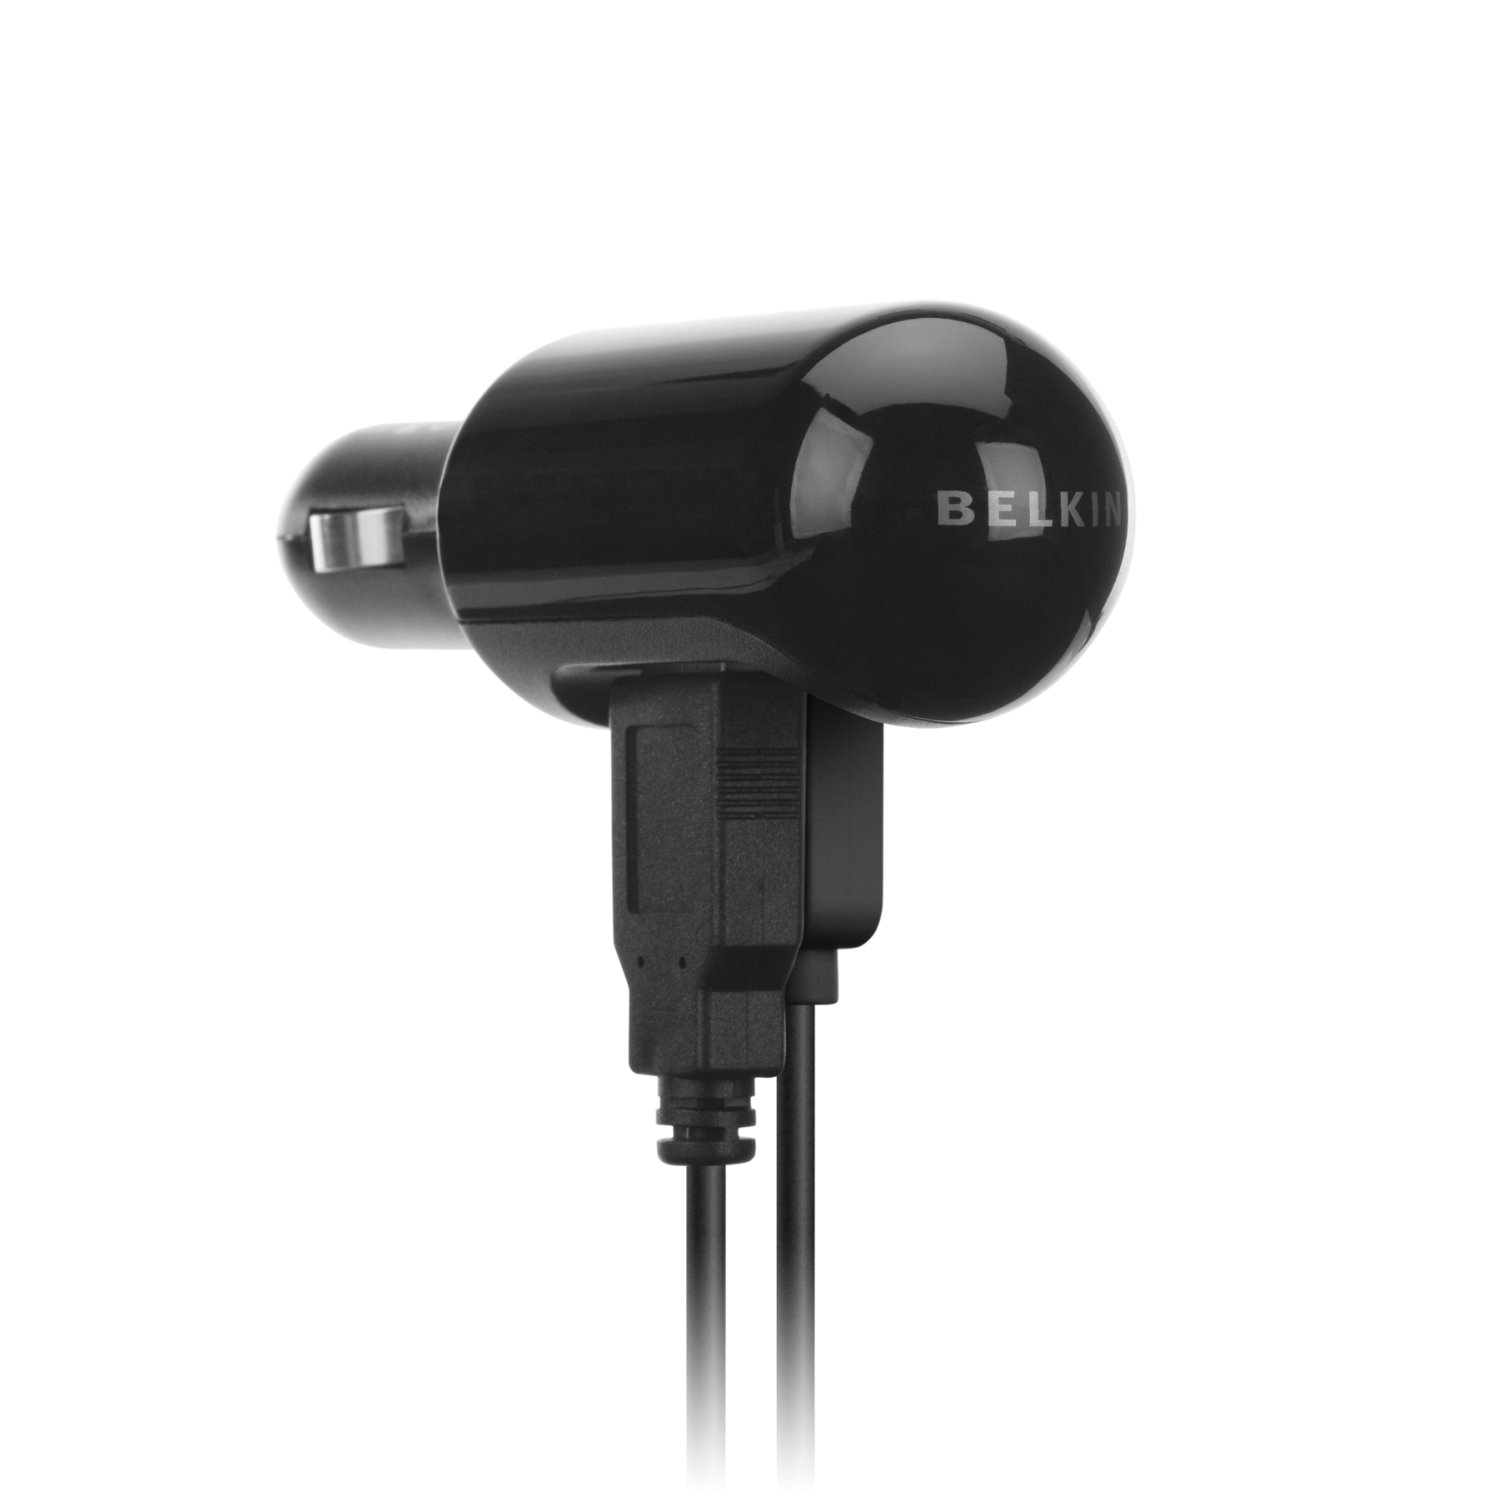 Belkin/belkin dual usb car charger iphone4/5 cigarette lighter car charger data cable charger plus F8Z280